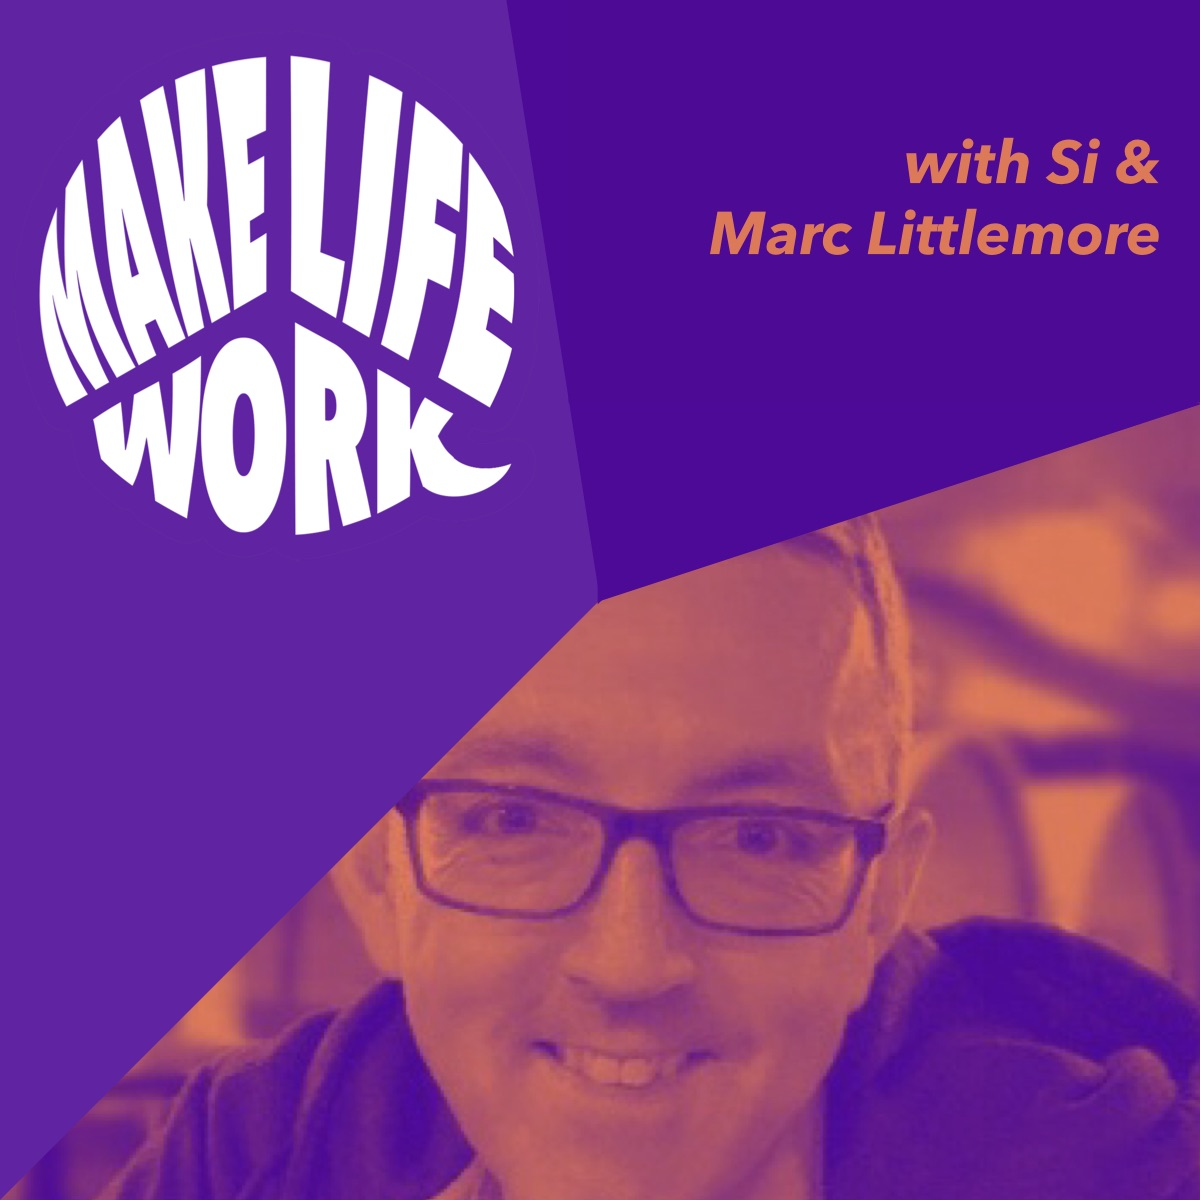 Make Life Work 9 - Marc Littlemore